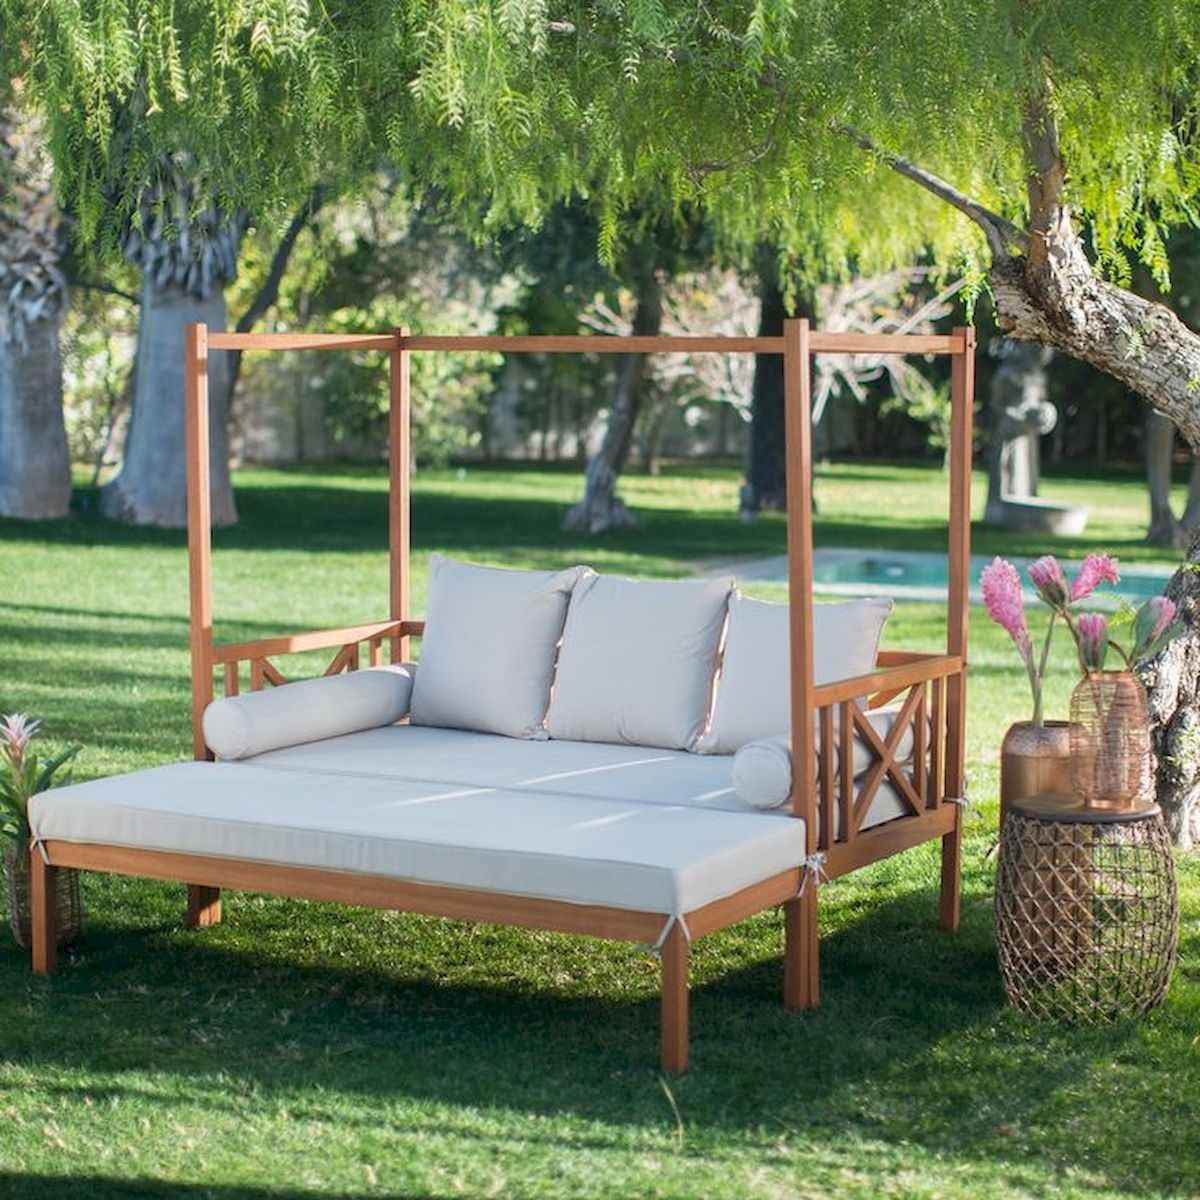 80 DIY Summery Backyard Projects Ideas Make Your Summer Awesome (54)